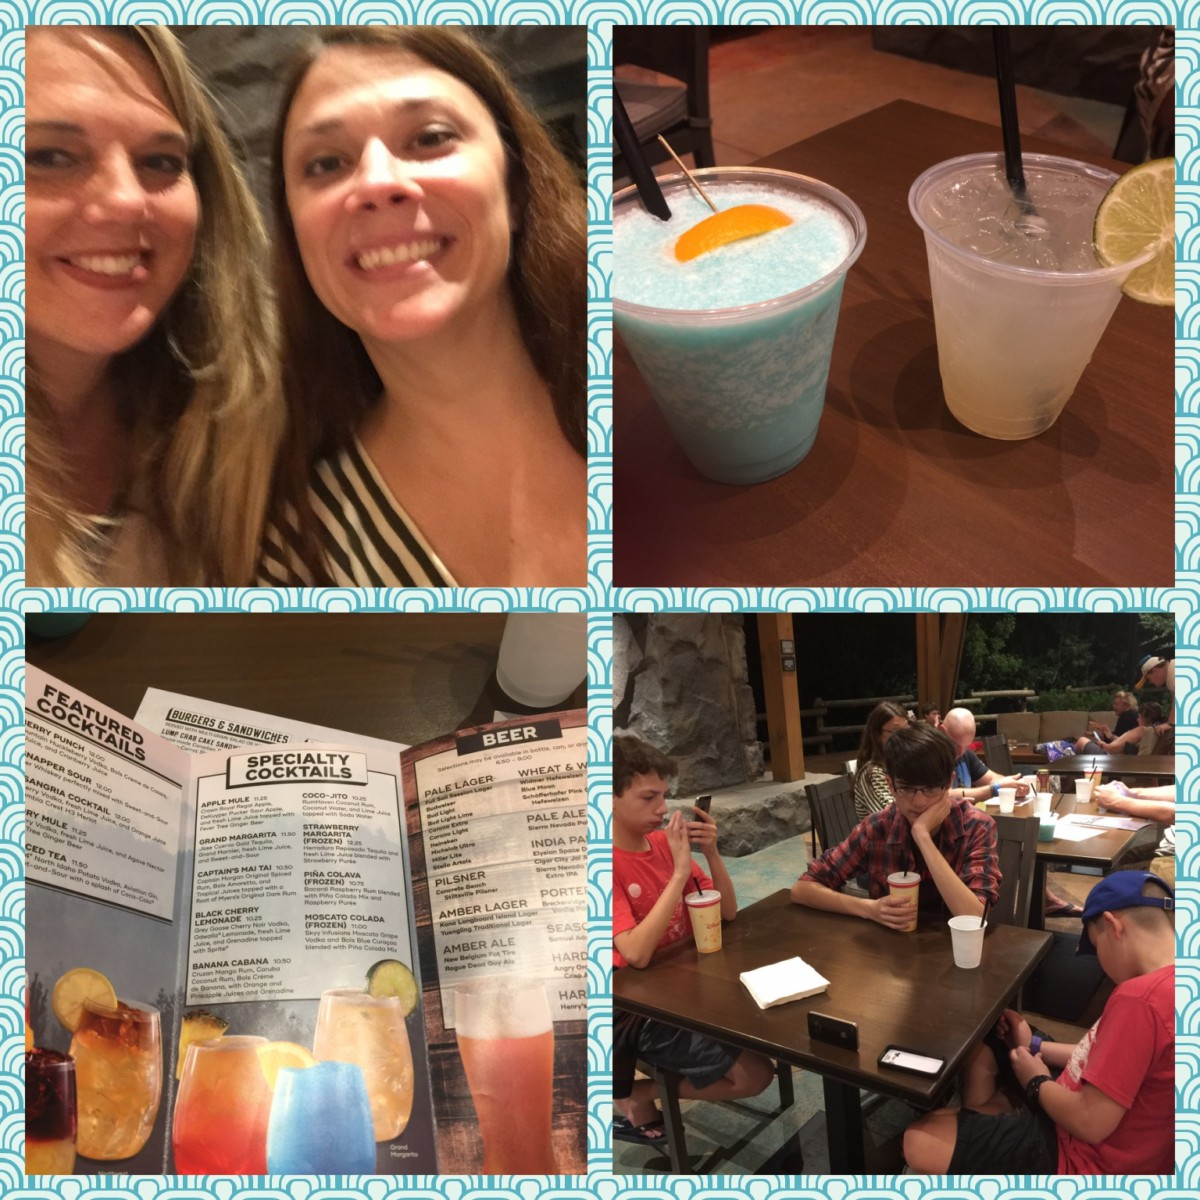 TMSM's Adventures in Florida Living ~ Trying New Things 3